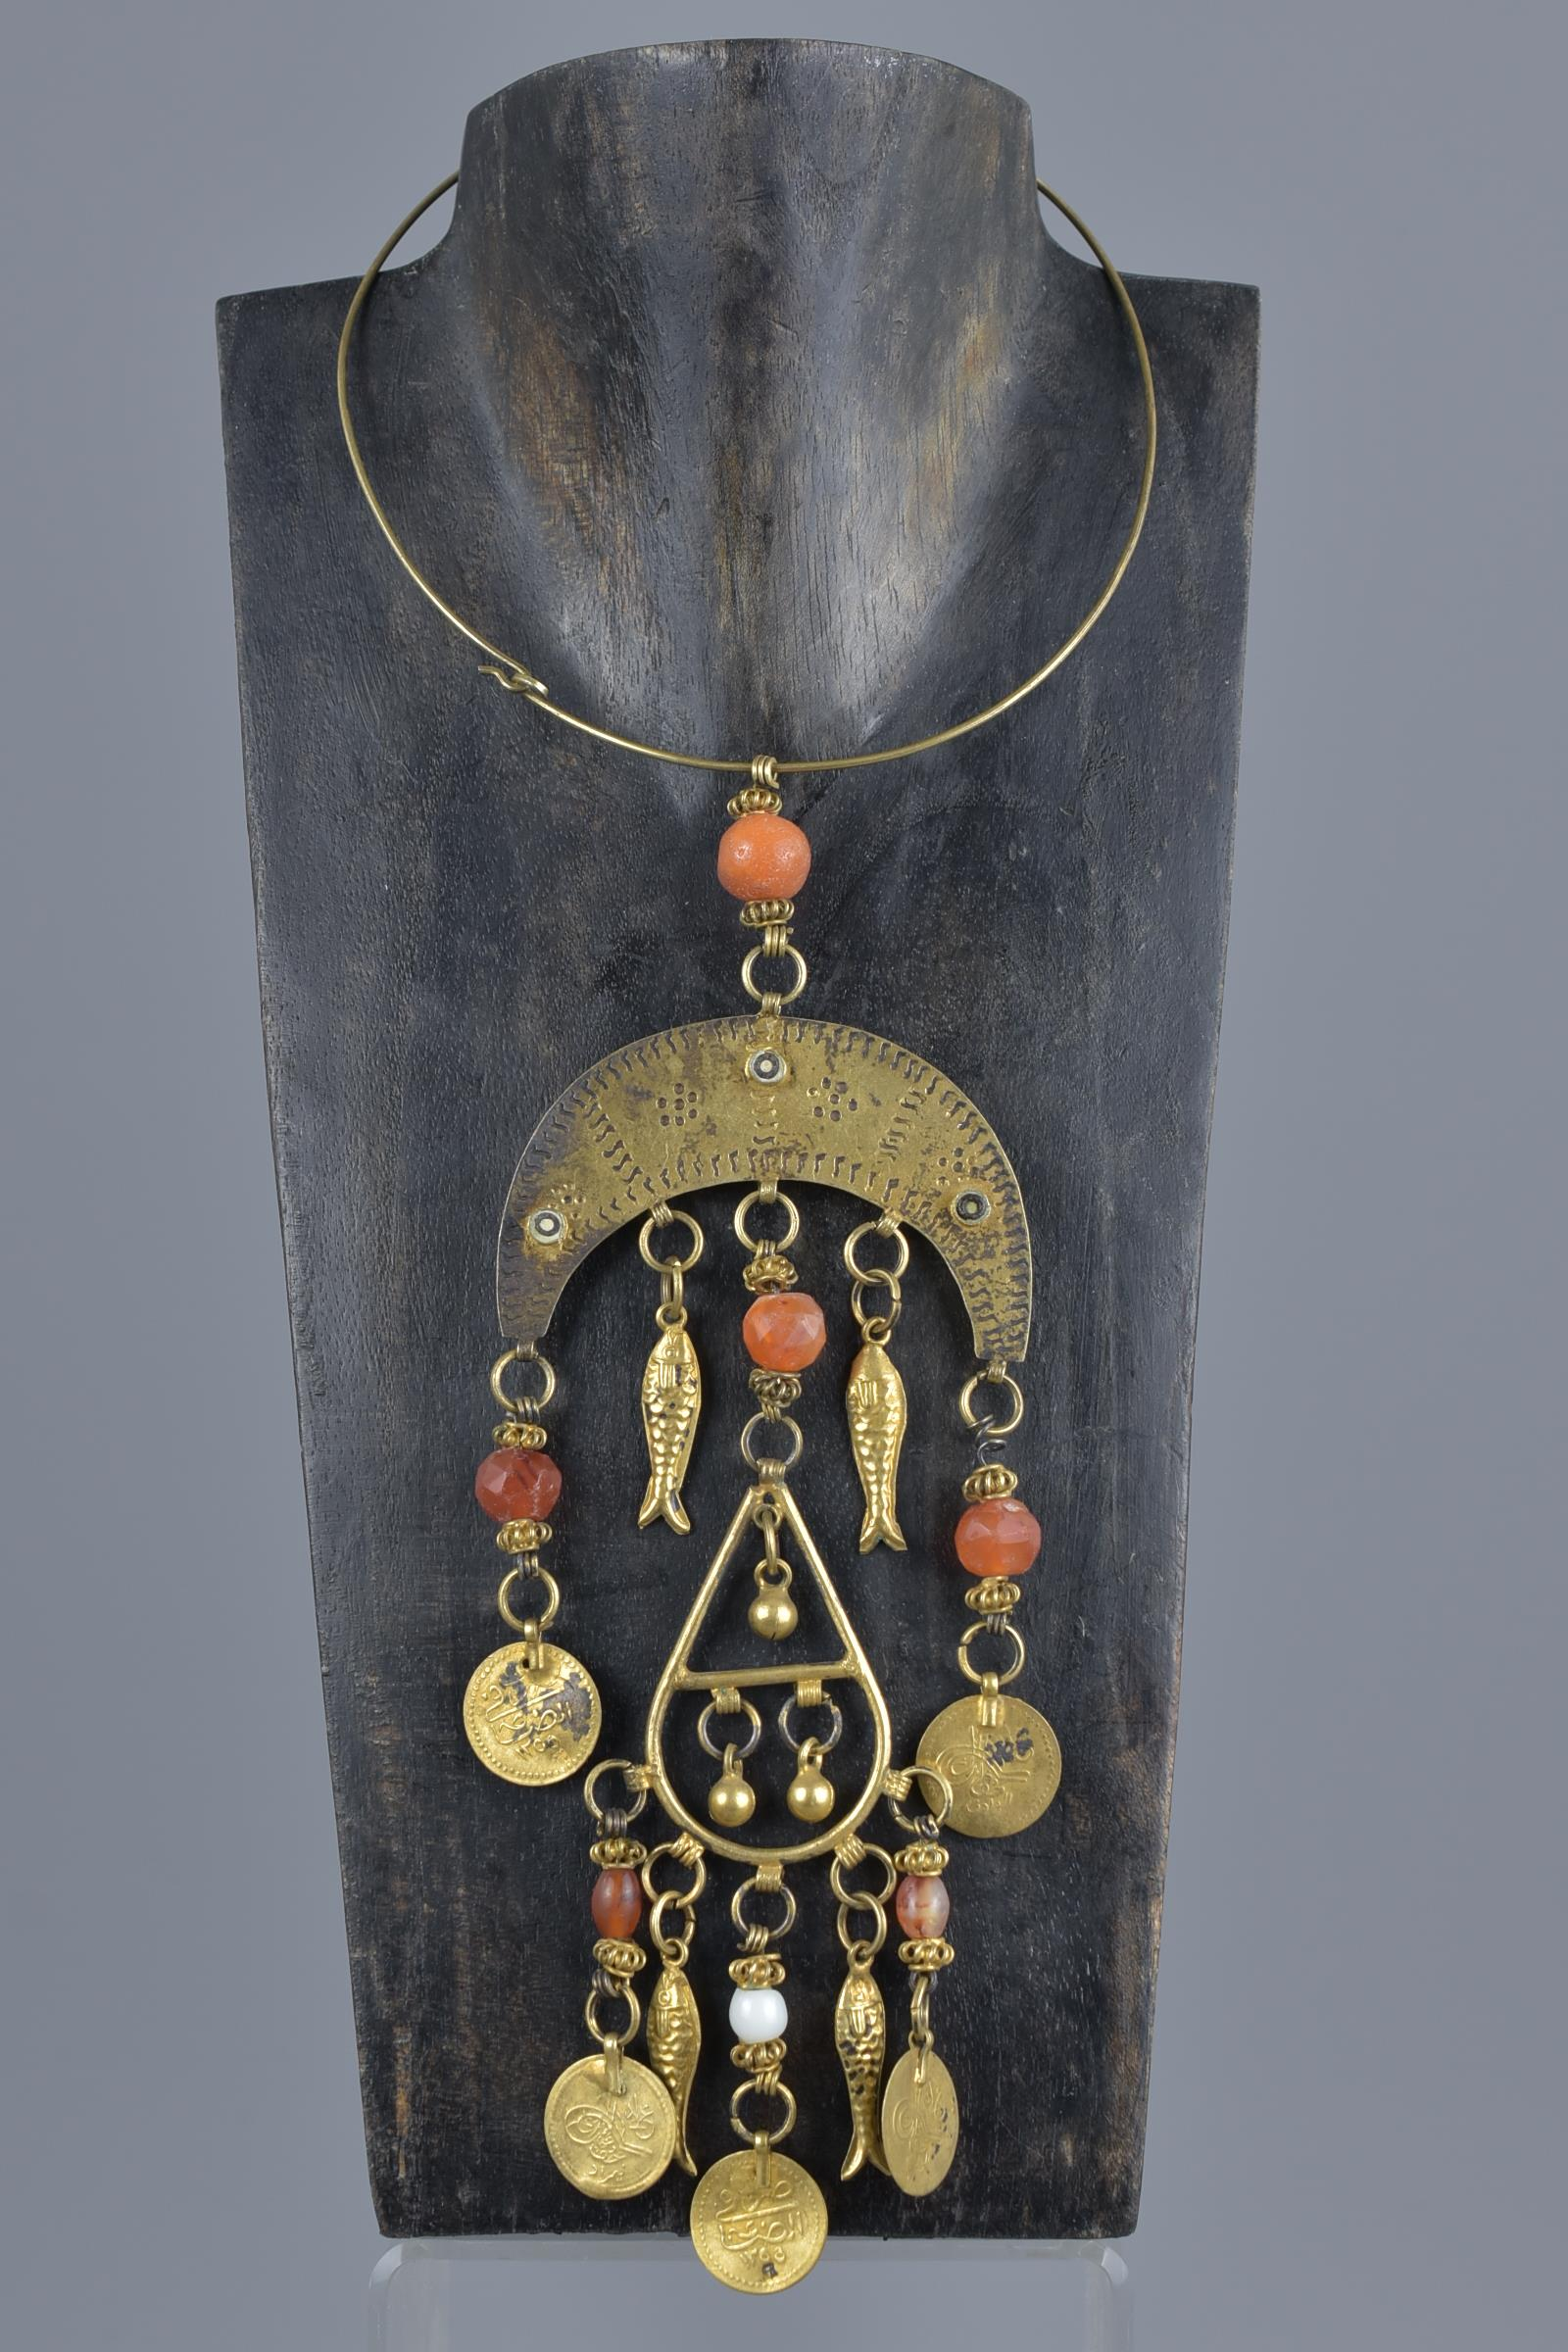 Lot 41 - A Islamic 19th century gilt metal necklace with beads and pendants inscribed.